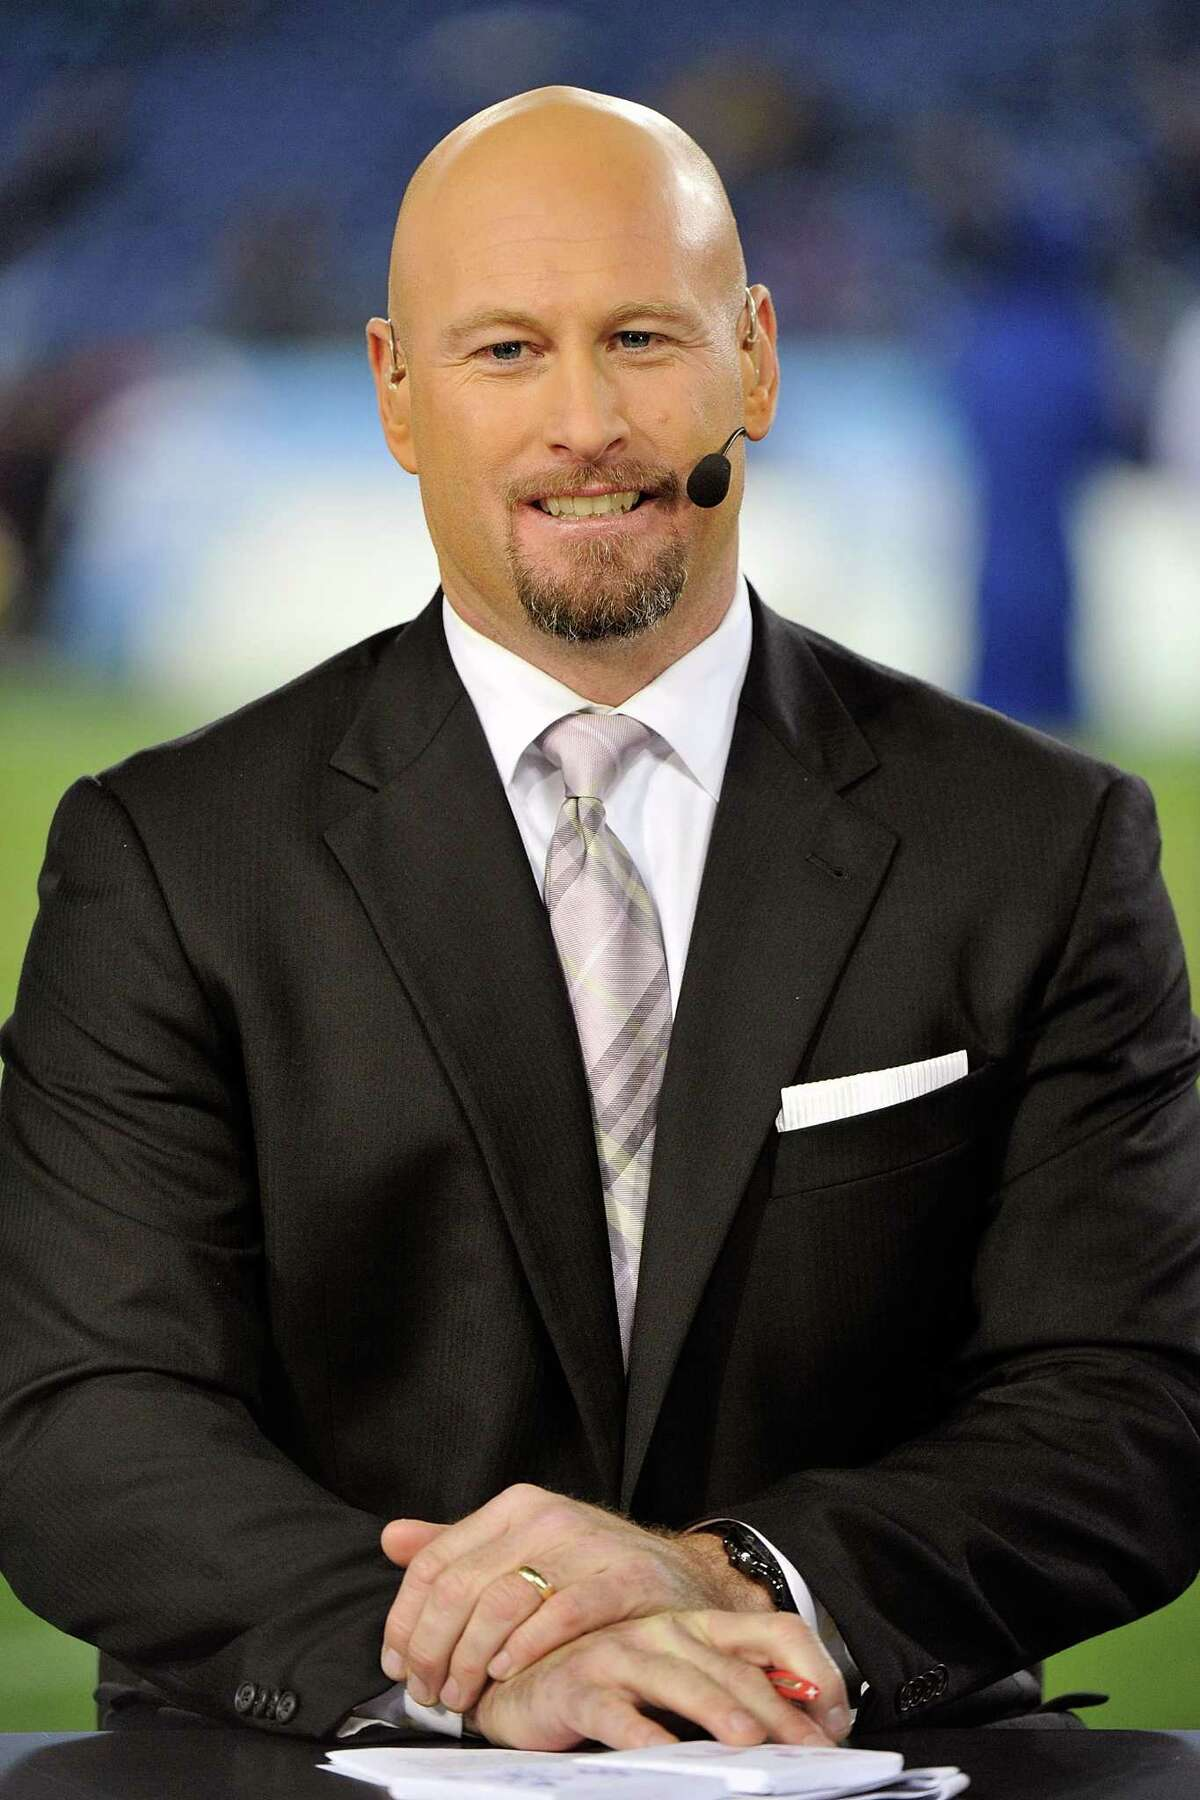 NFL analyst Trent Dilfer was one of the high-profile names who were part of ESPN's layoffs this week.